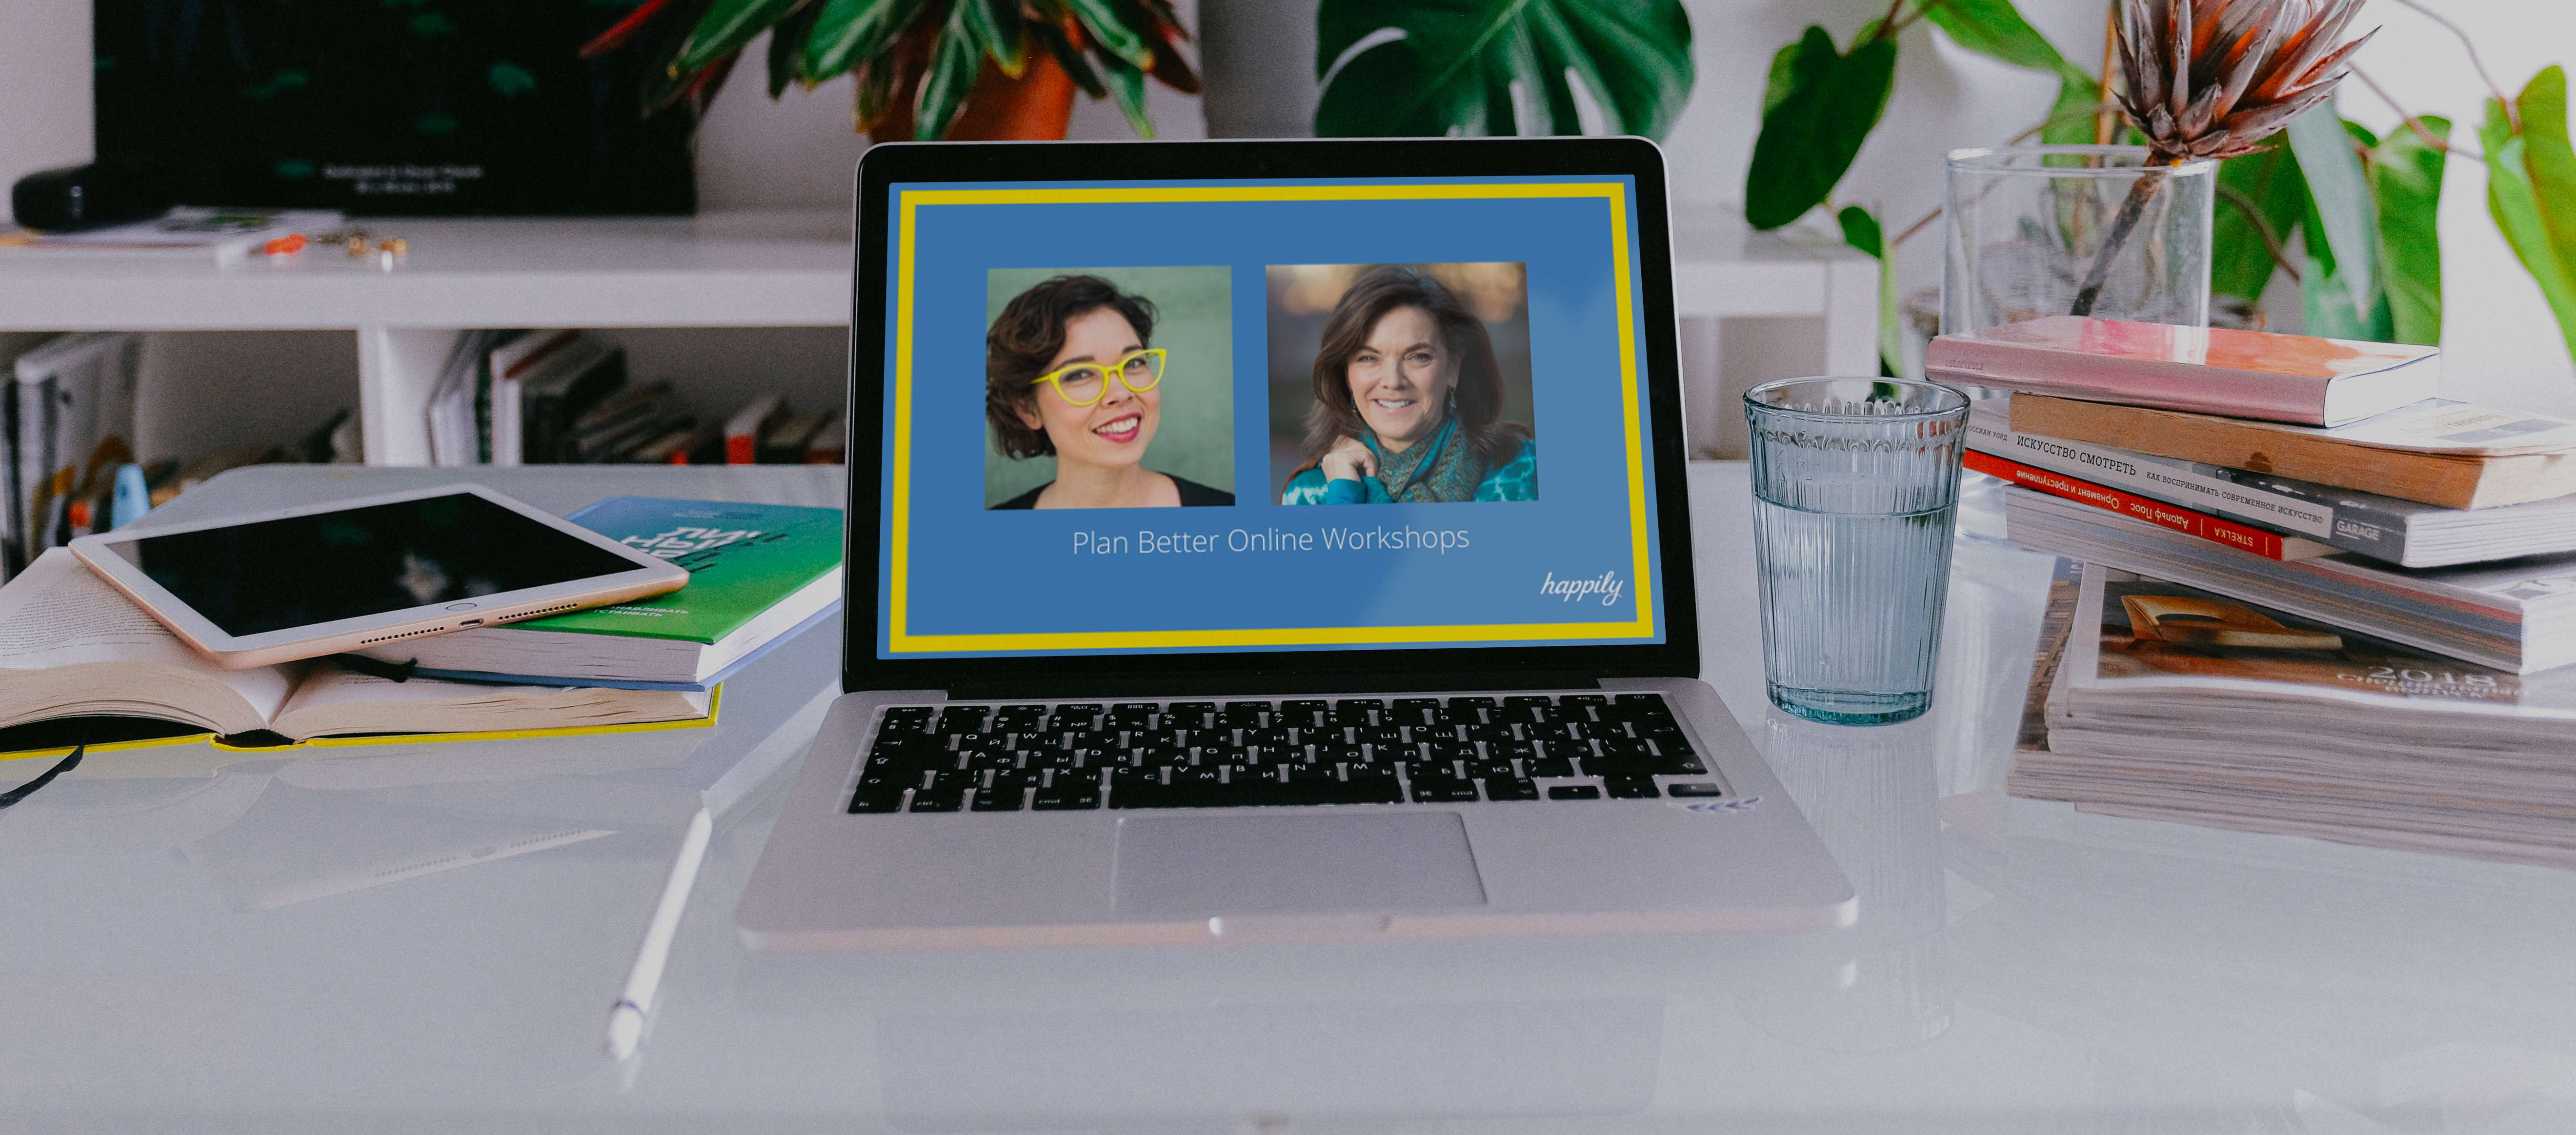 How to Create Fun Online Workshops with Amy Jo Kim